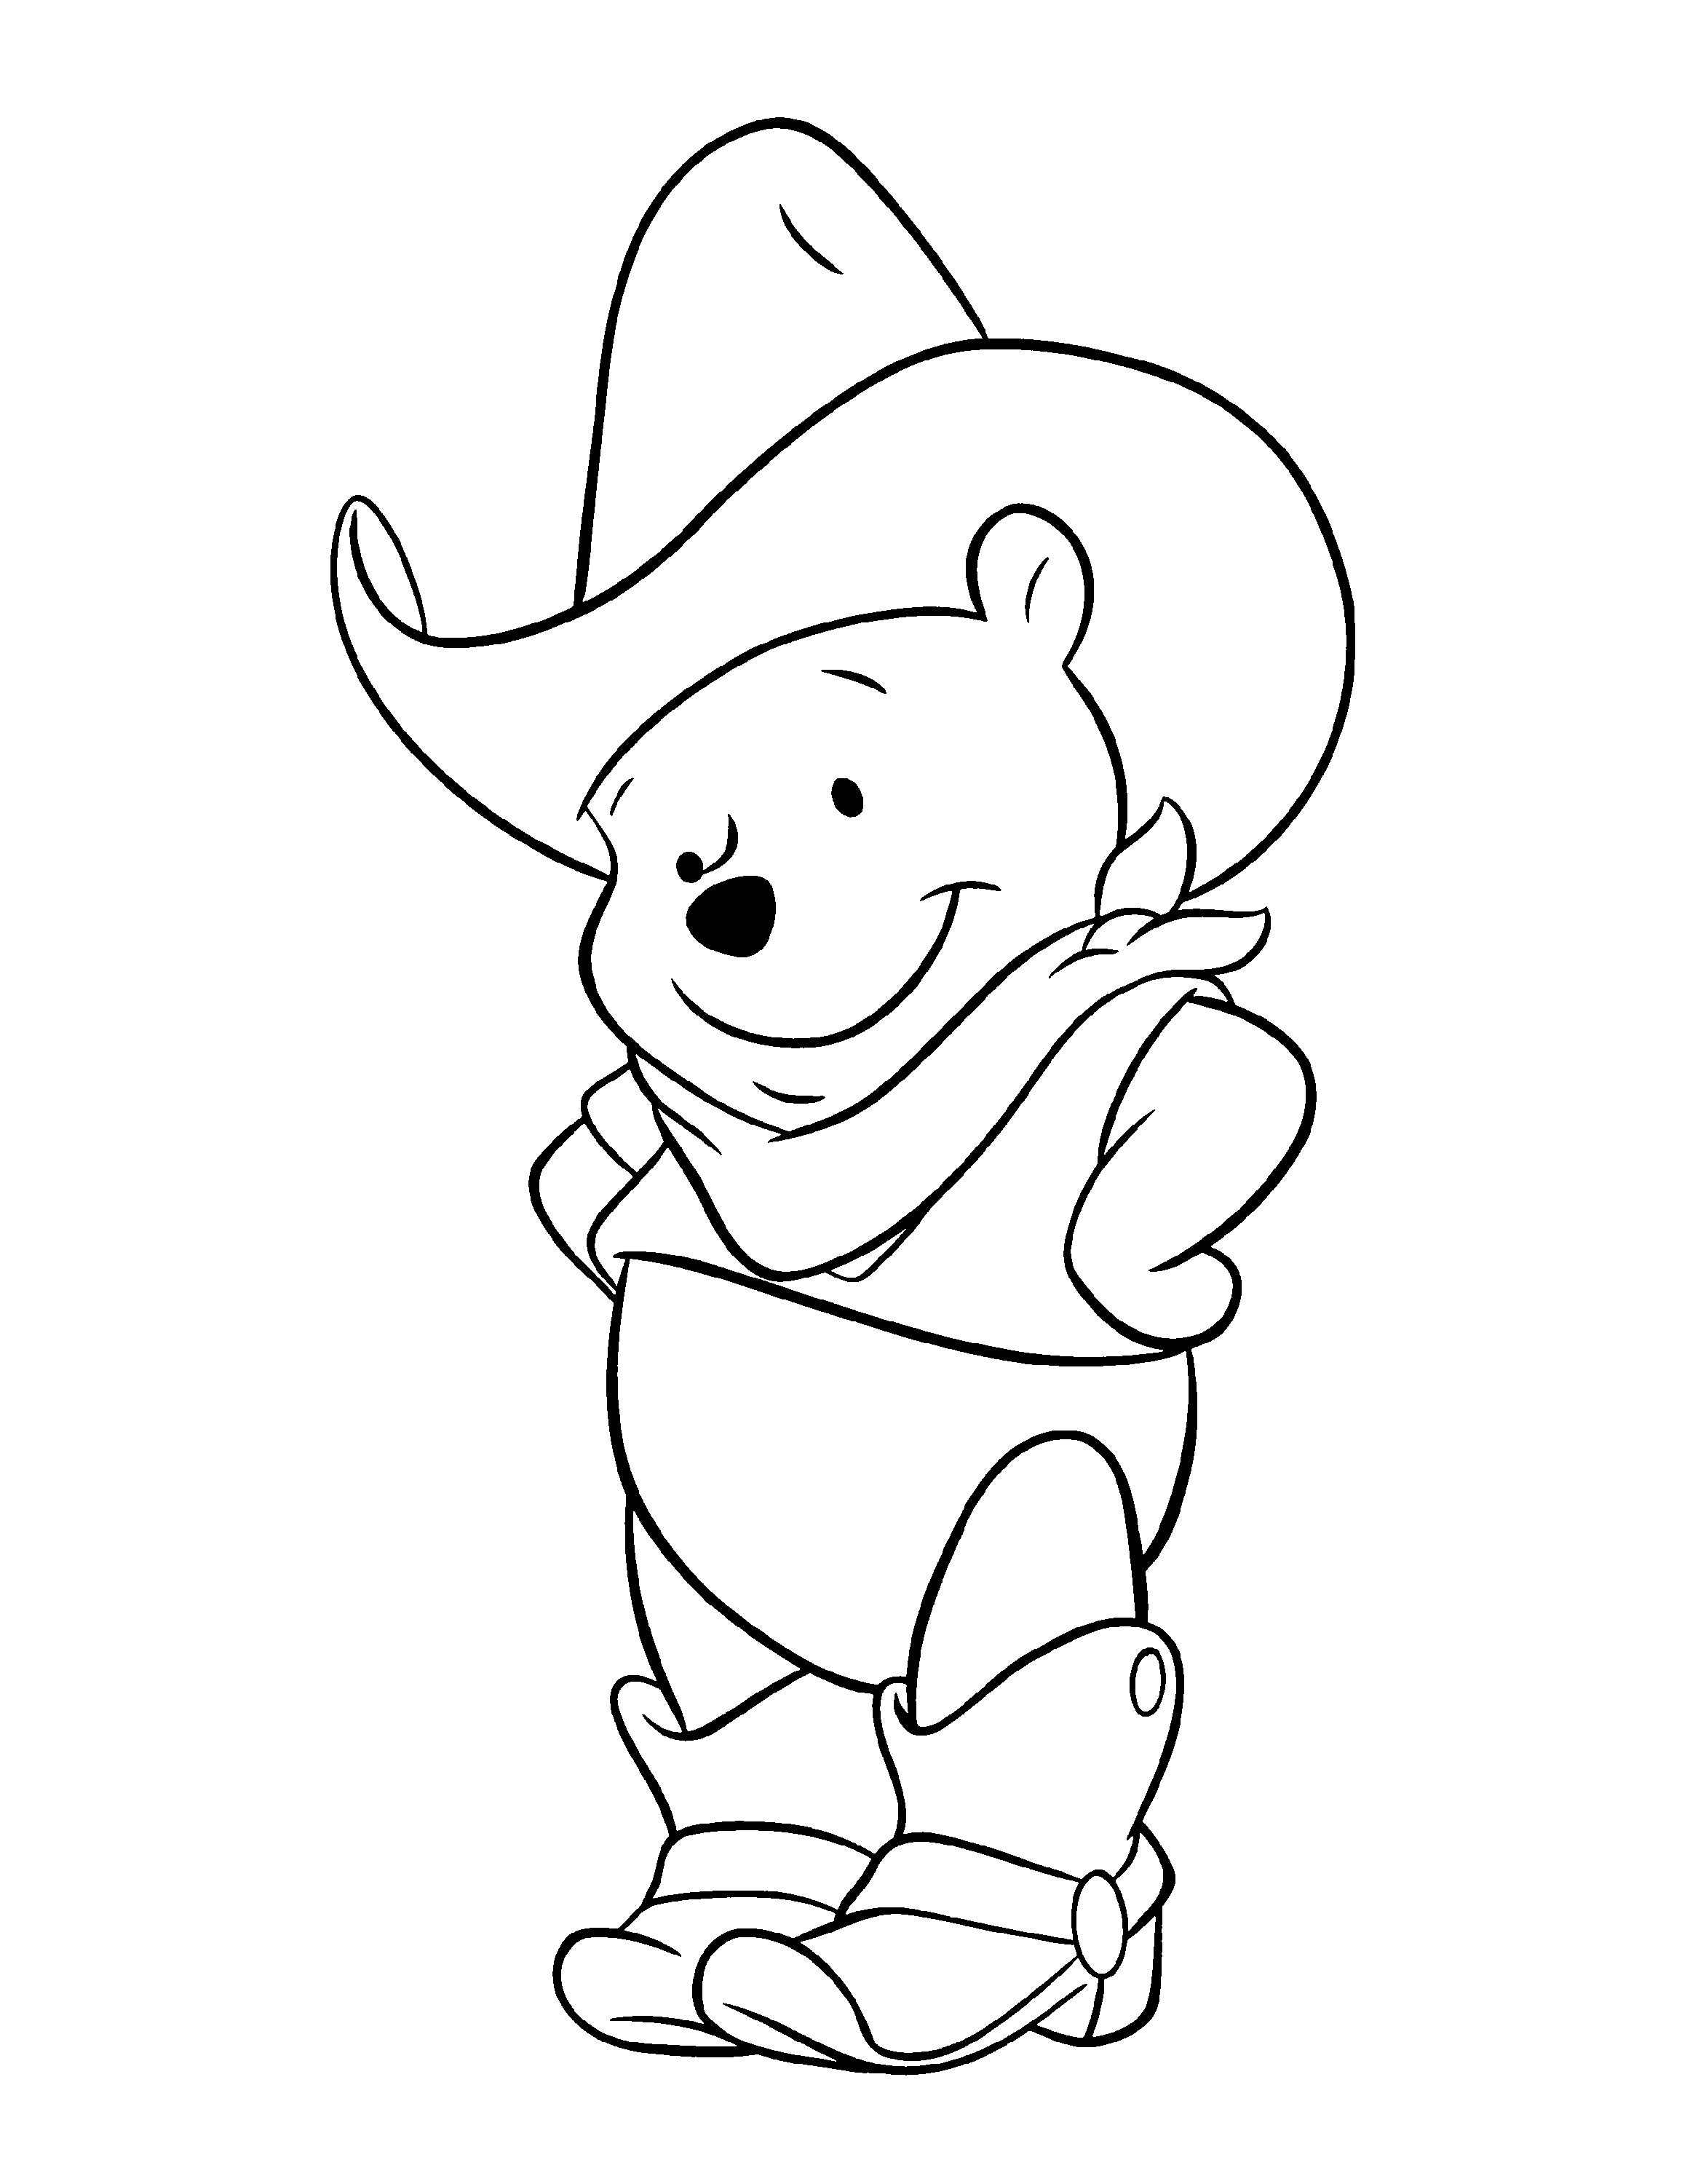 Winnie The Pooh Coloring Pages Cartoon